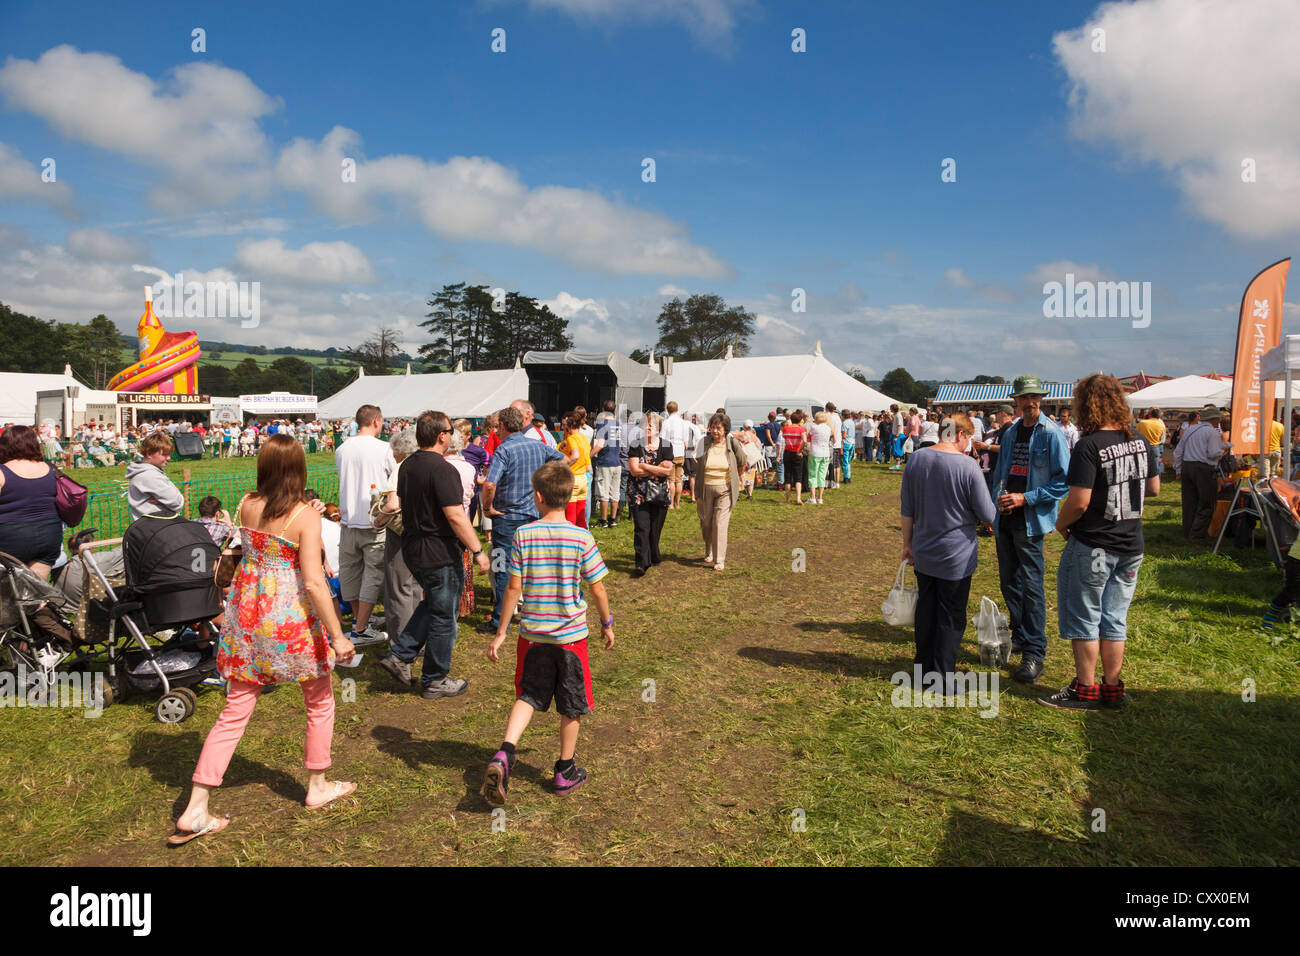 People at the Mid-Somerset agricultural show, UK - Stock Image